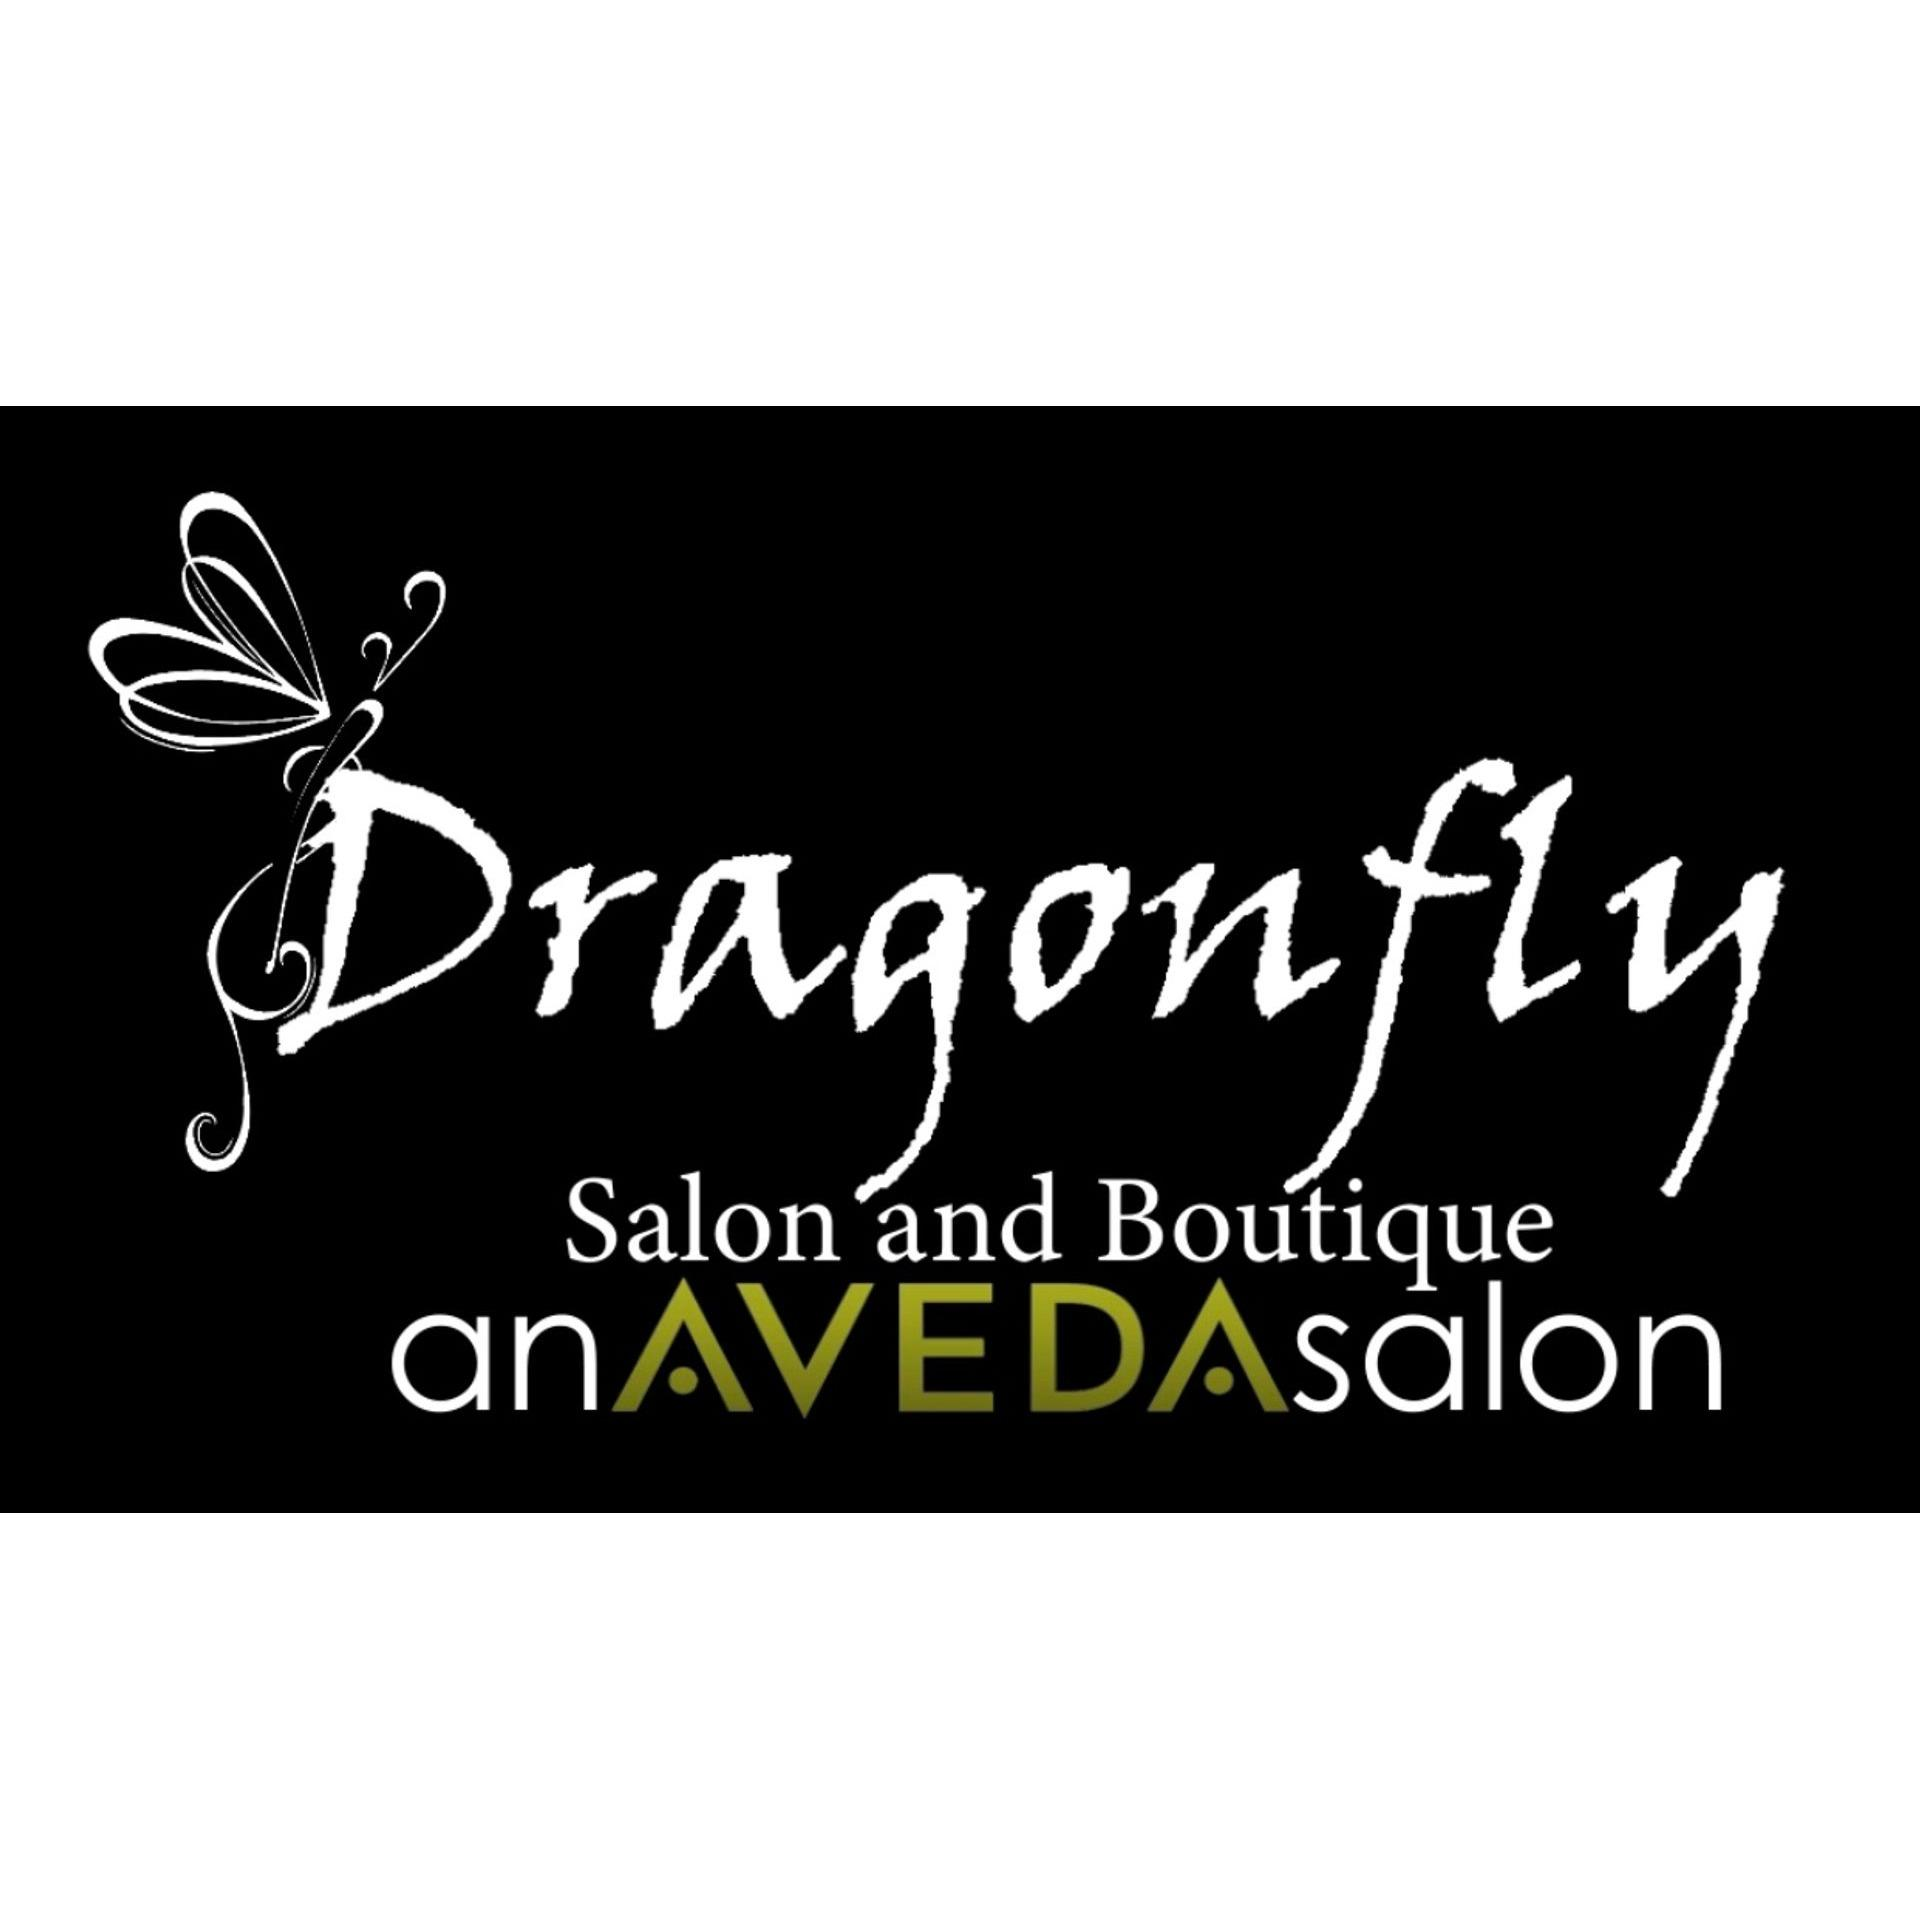 Dragonfly Salon and Boutique